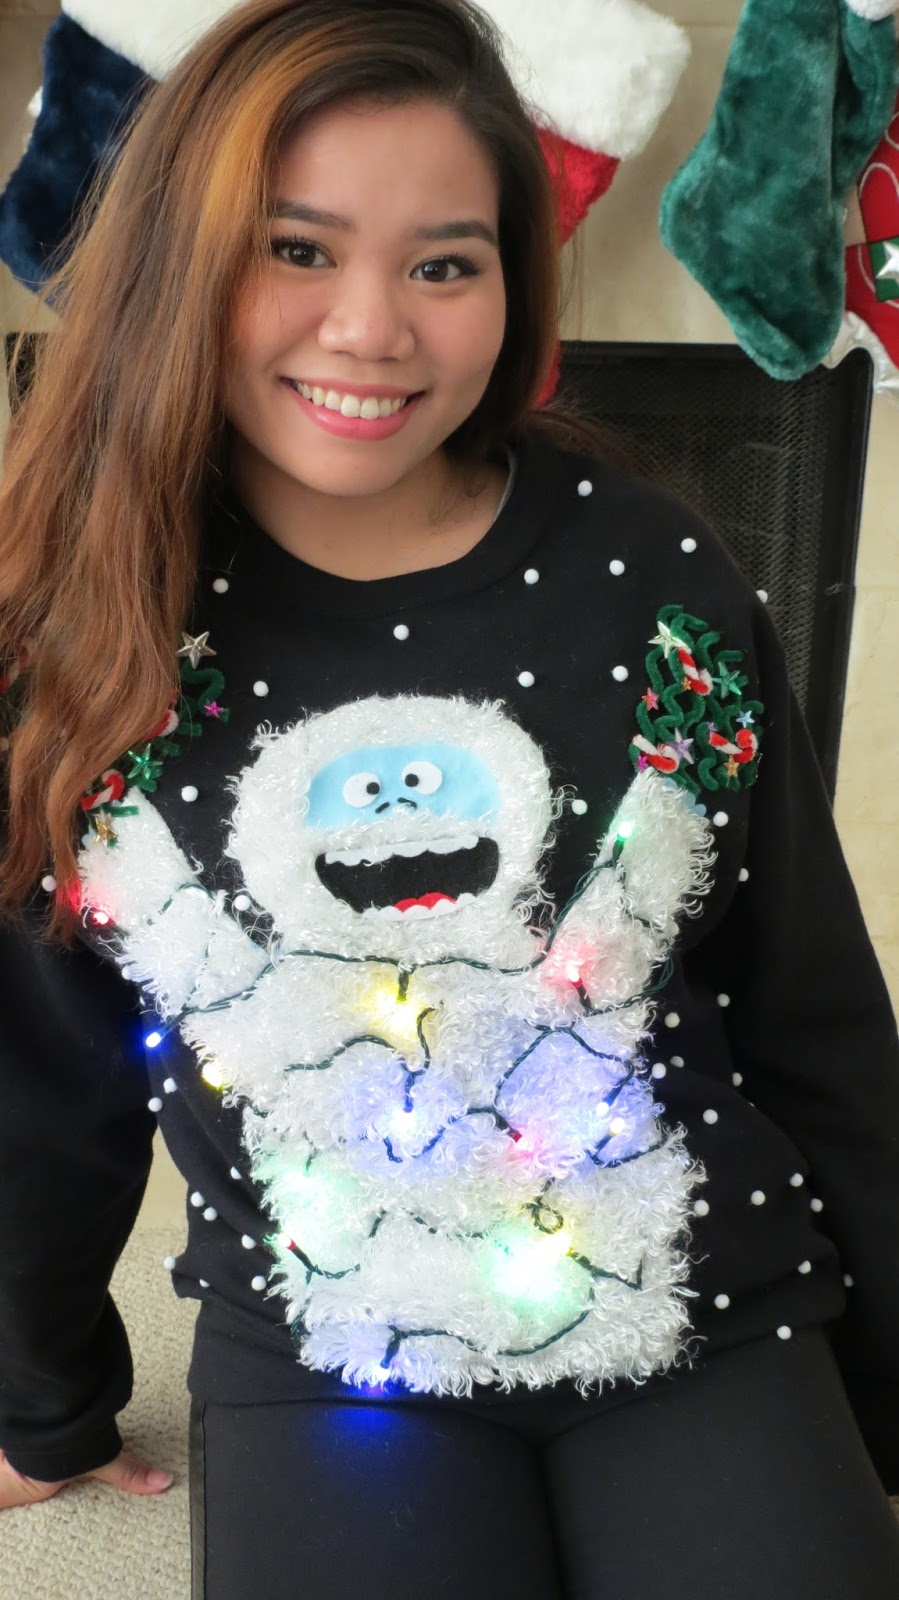 Nonachewy Diy Ugly Christmas Sweater 2014 Abominable